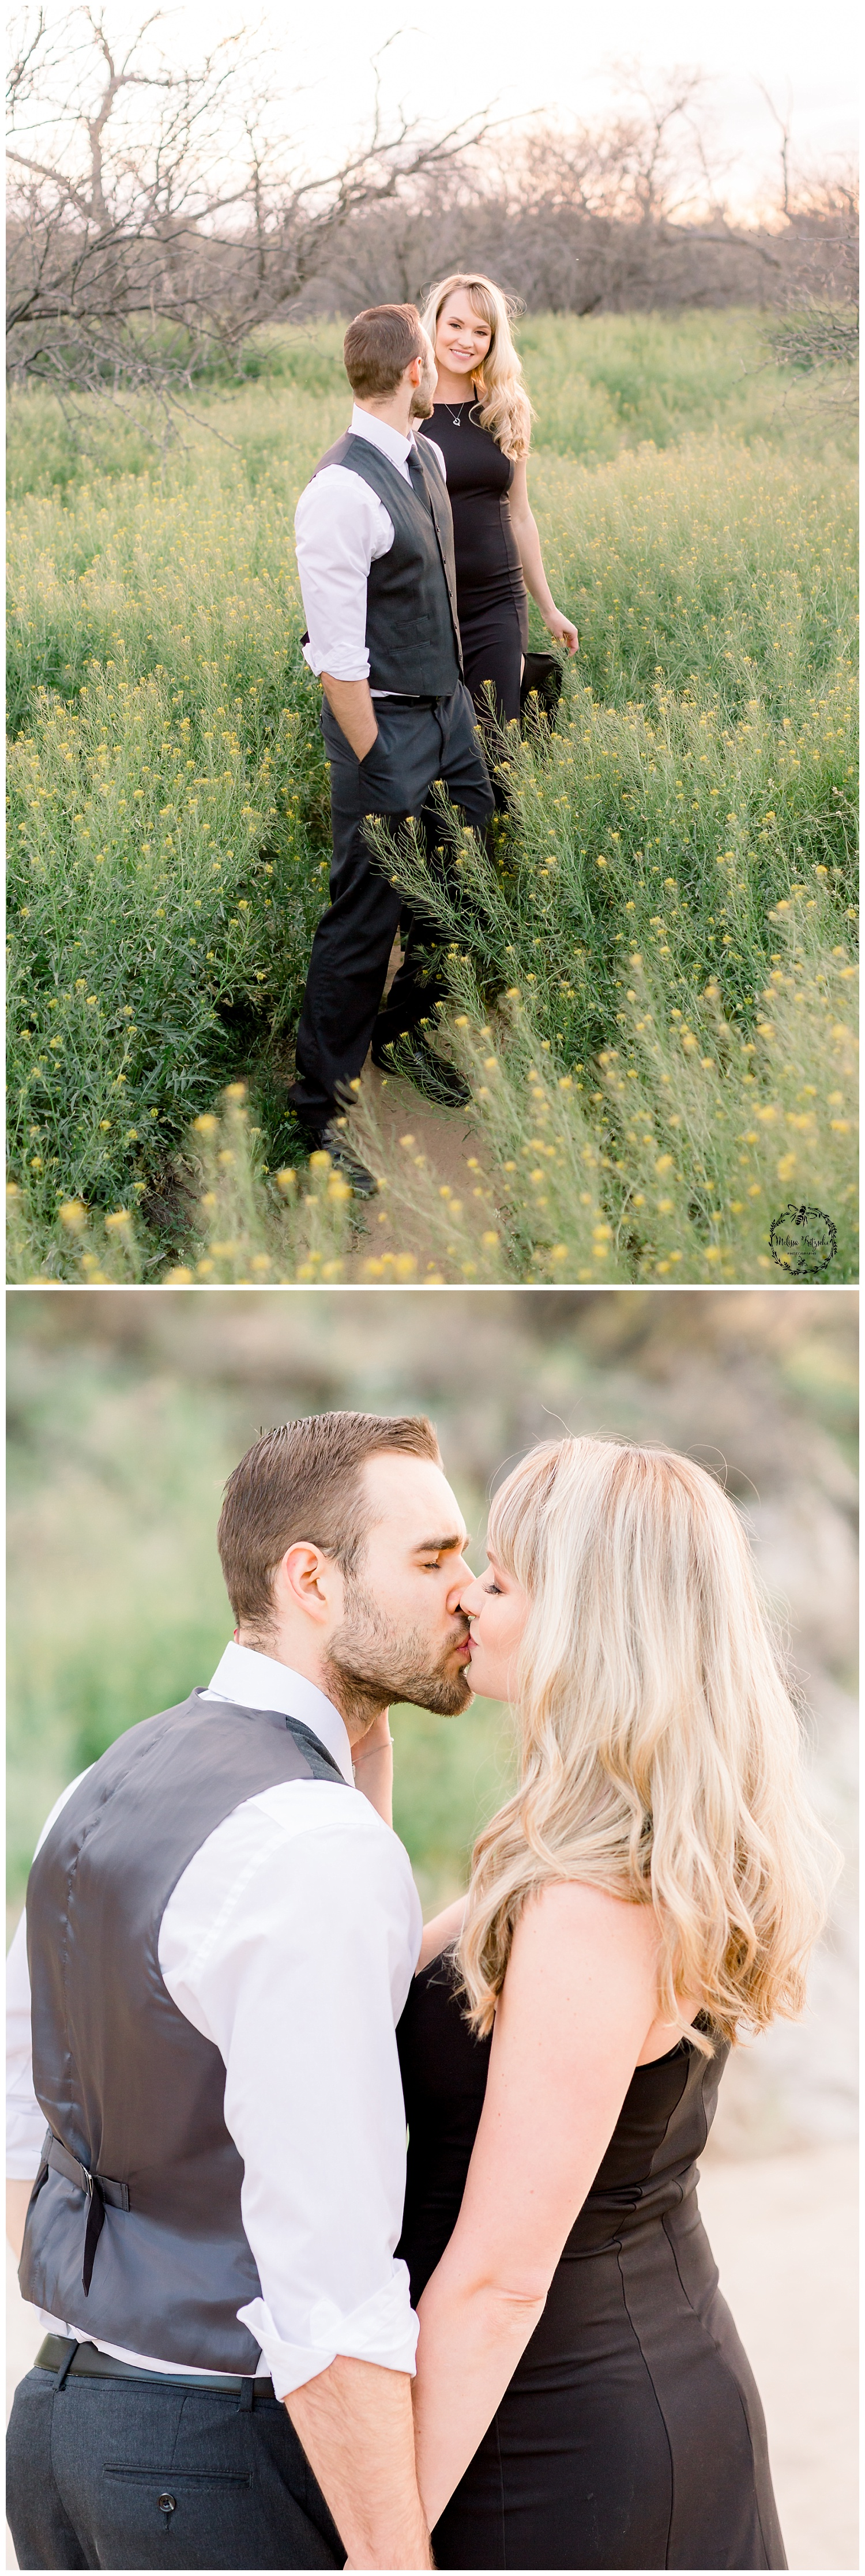 Tucson Desert Engagement Session- Kelly and Ben_0003.jpg